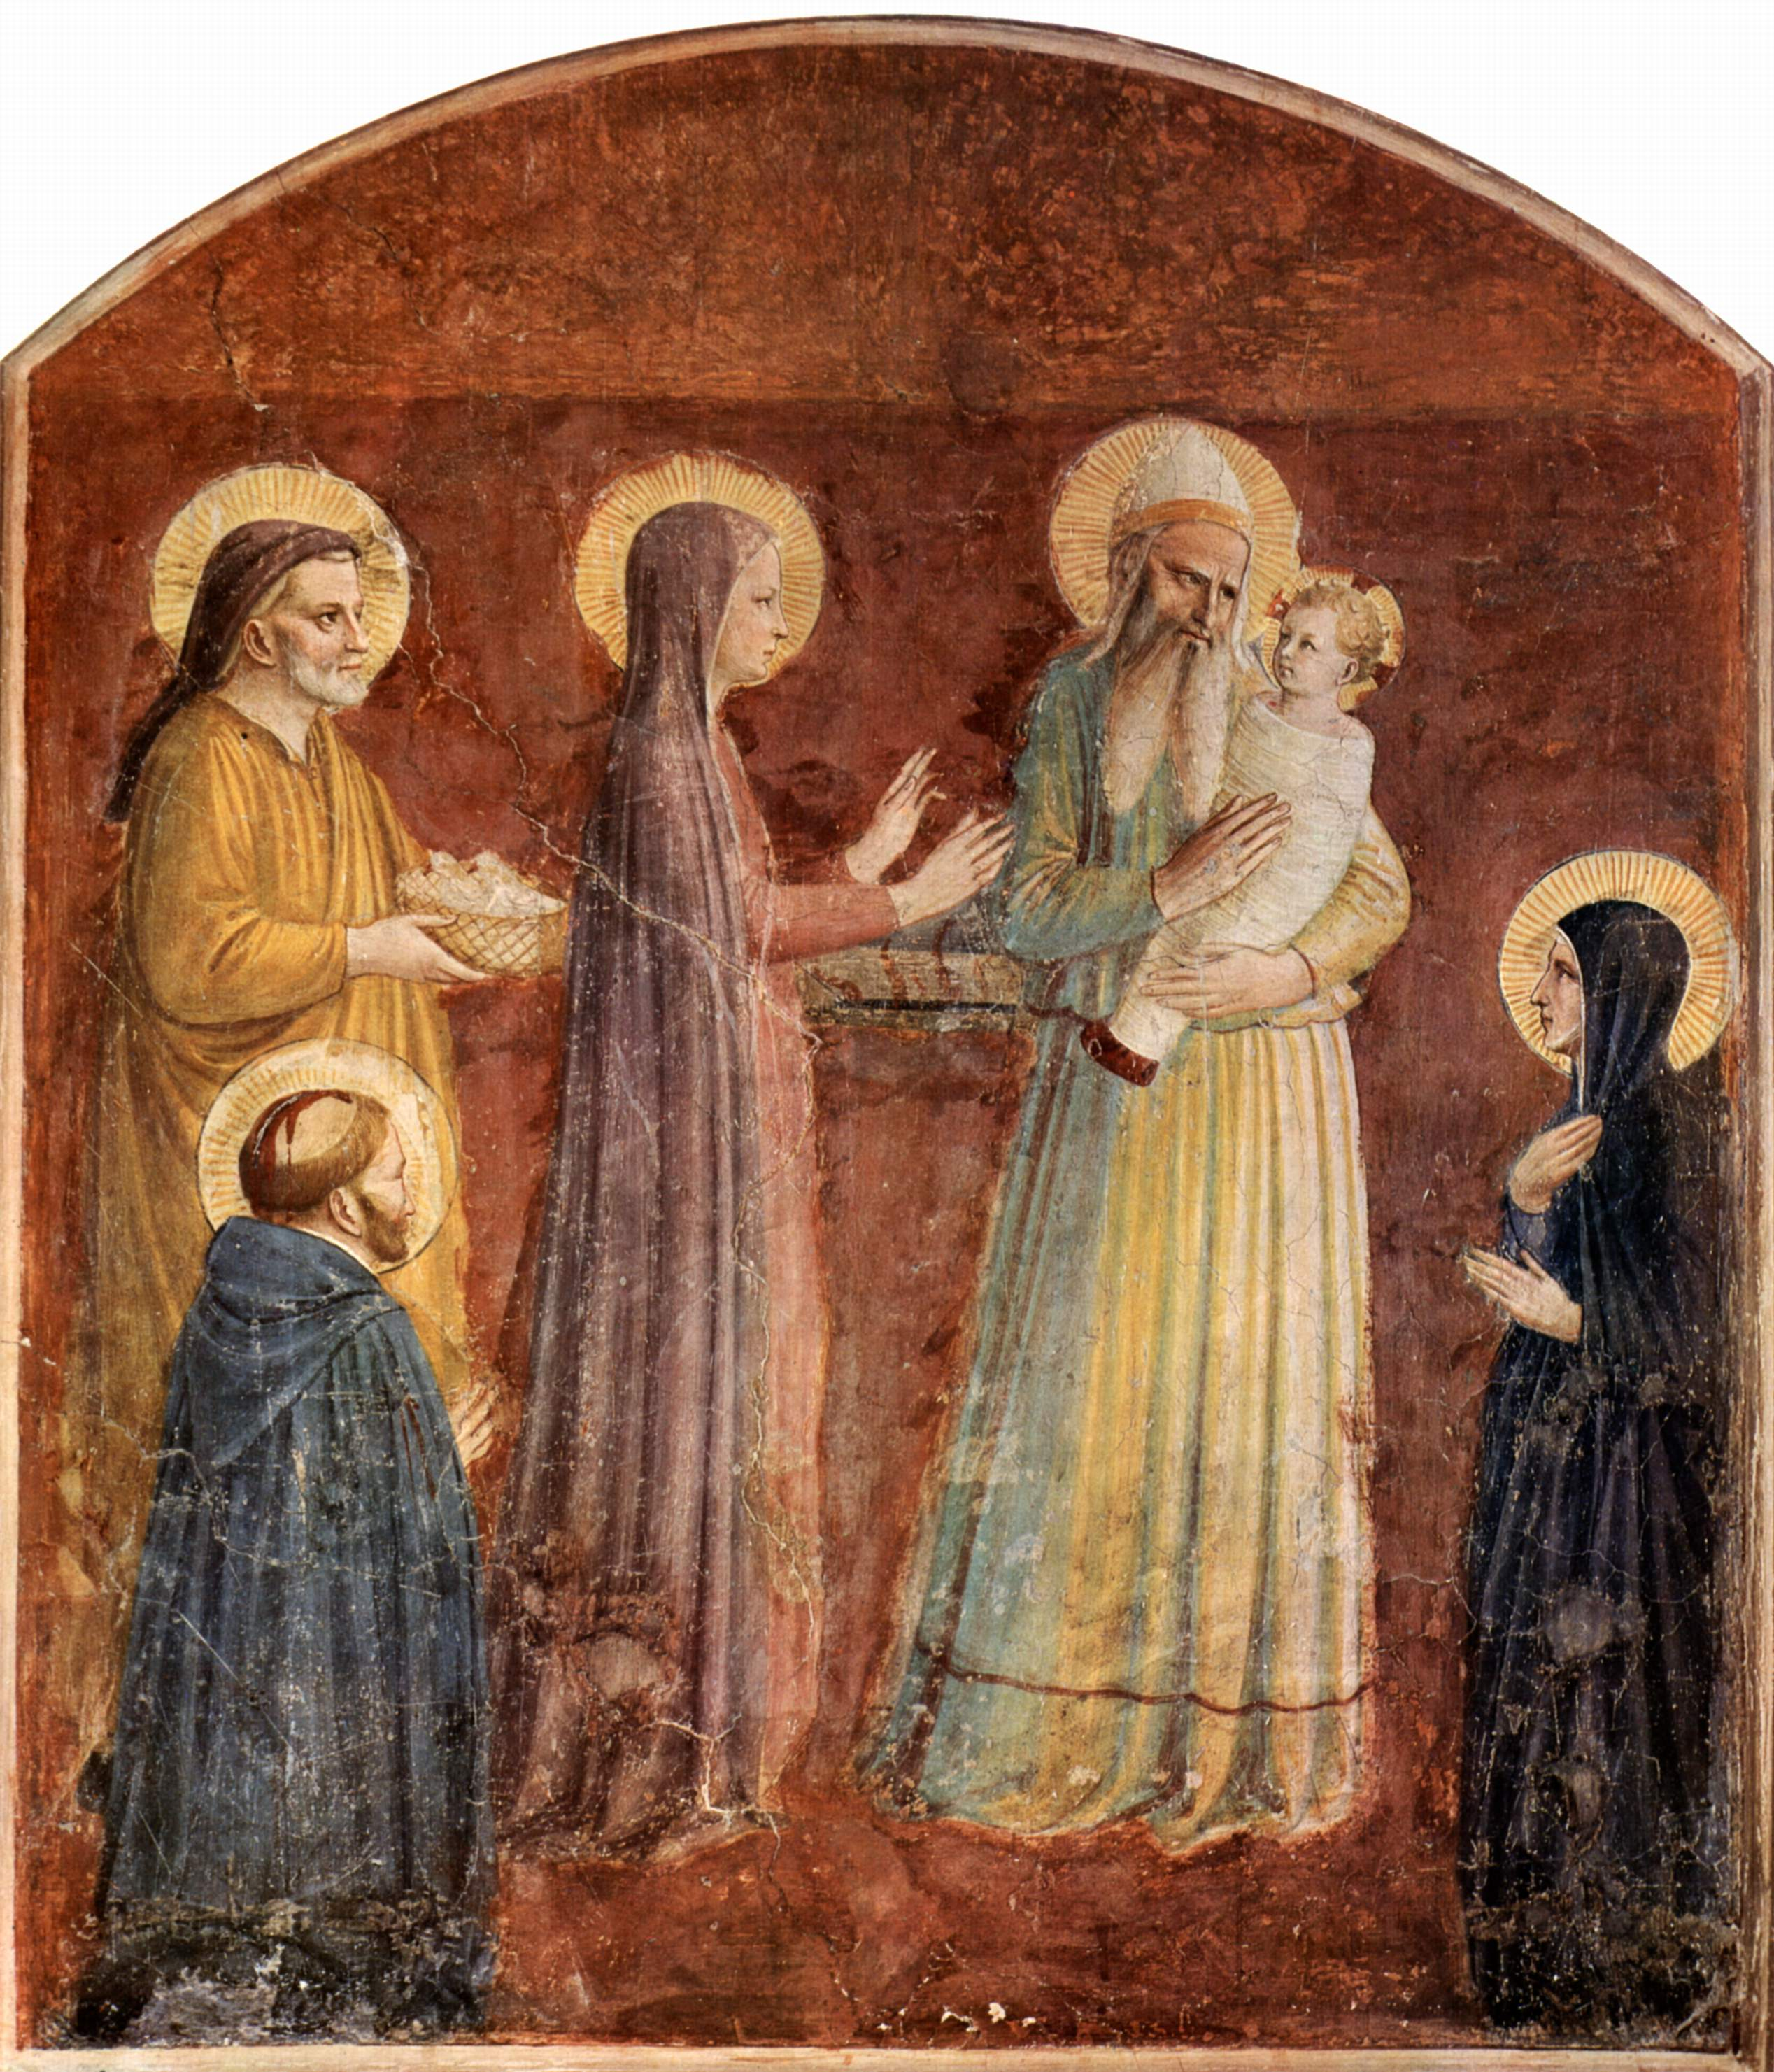 http://upload.wikimedia.org/wikipedia/commons/b/b6/Fra_Angelico_017.jpg